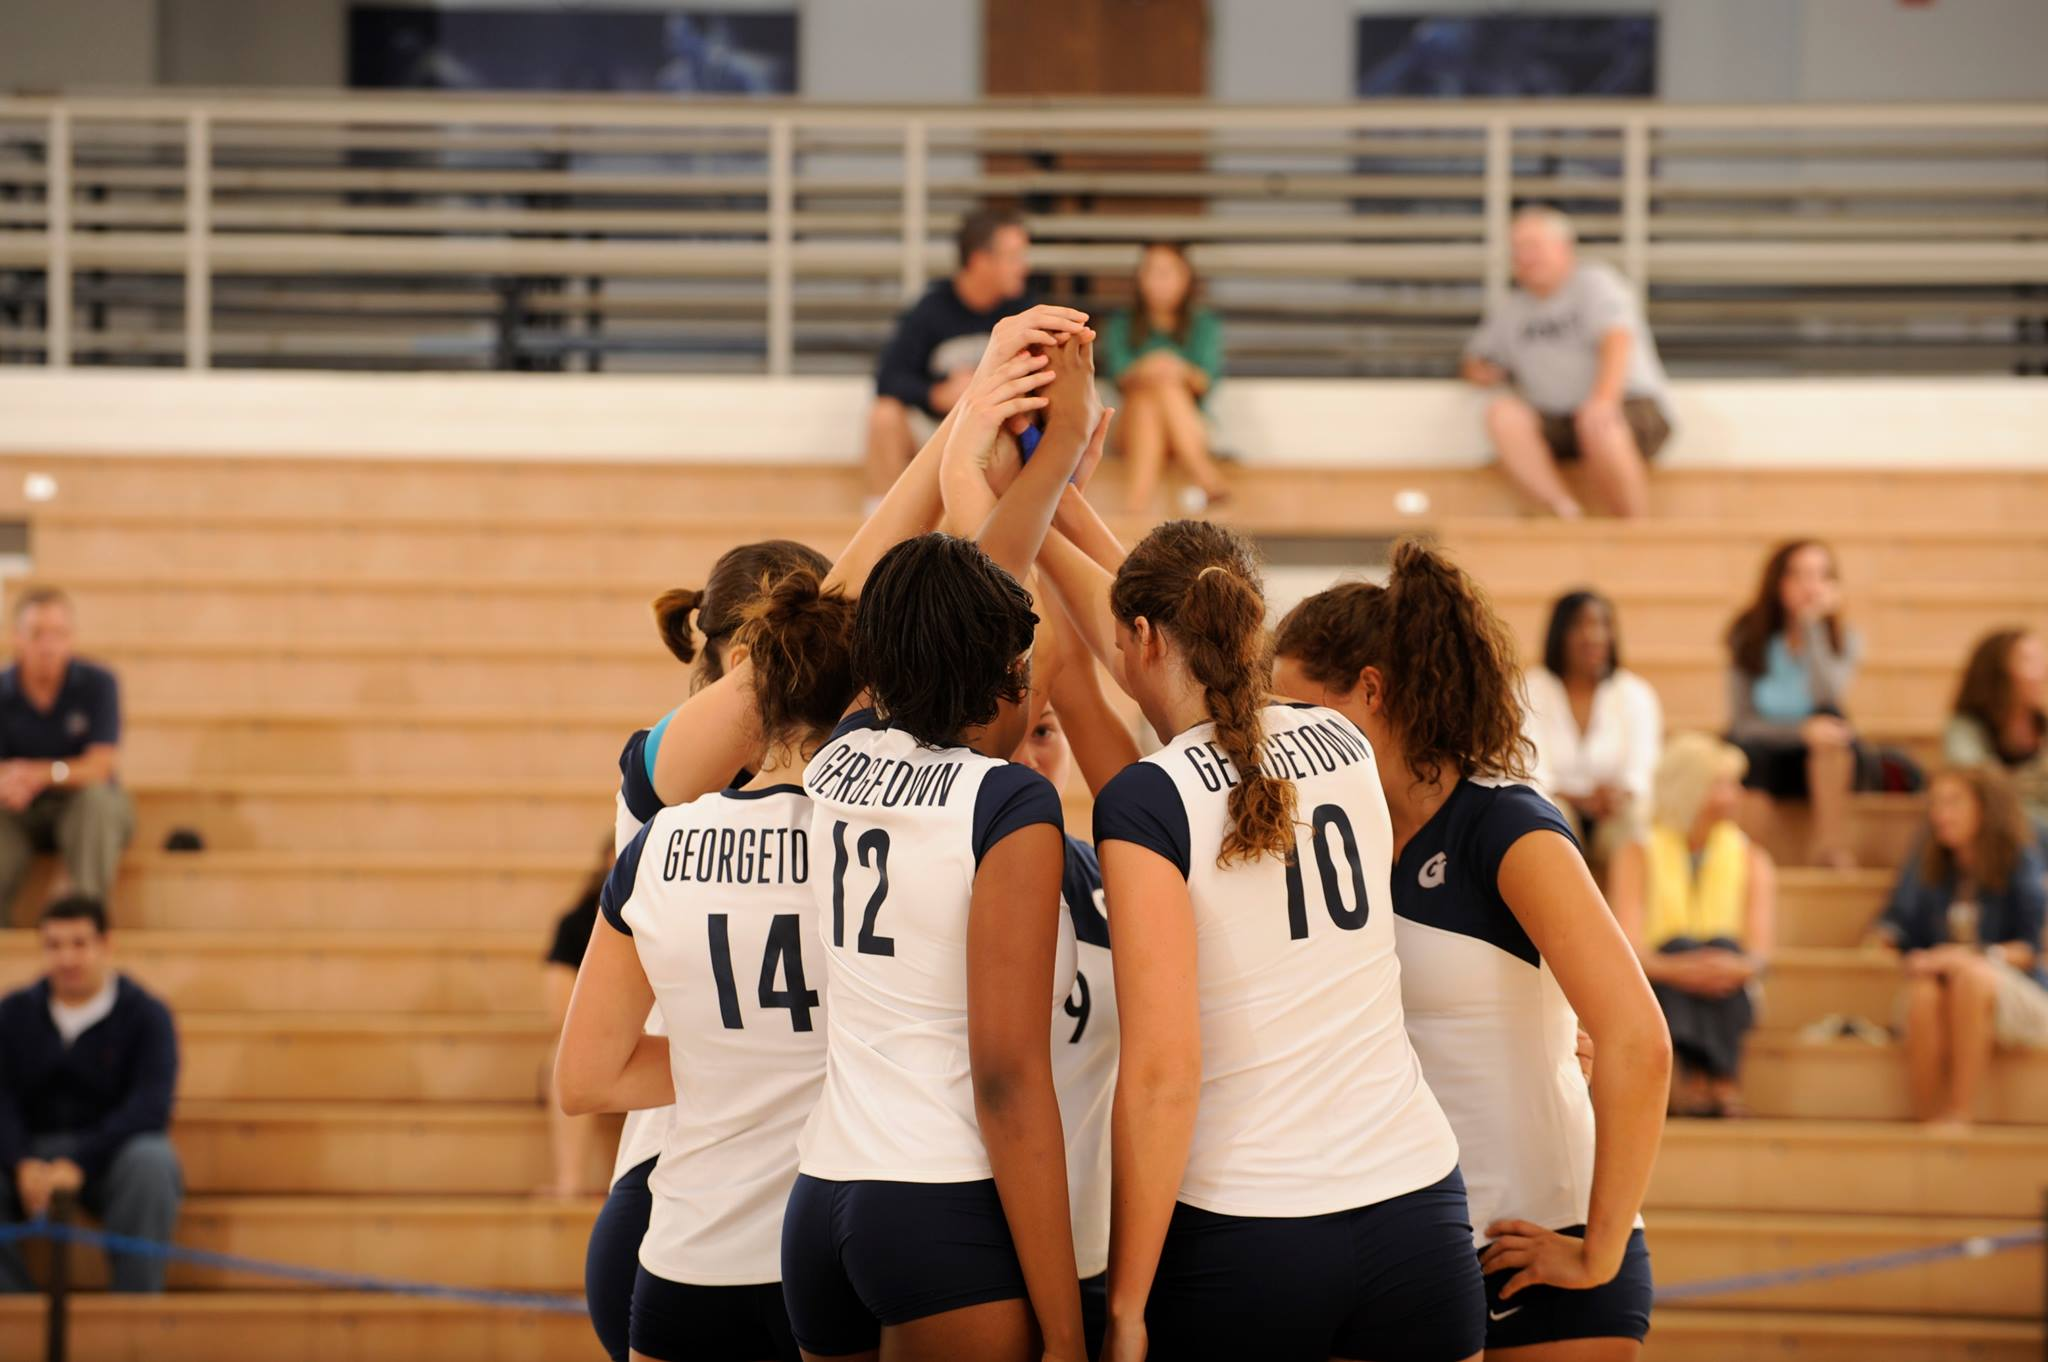 Georgetown volleyball